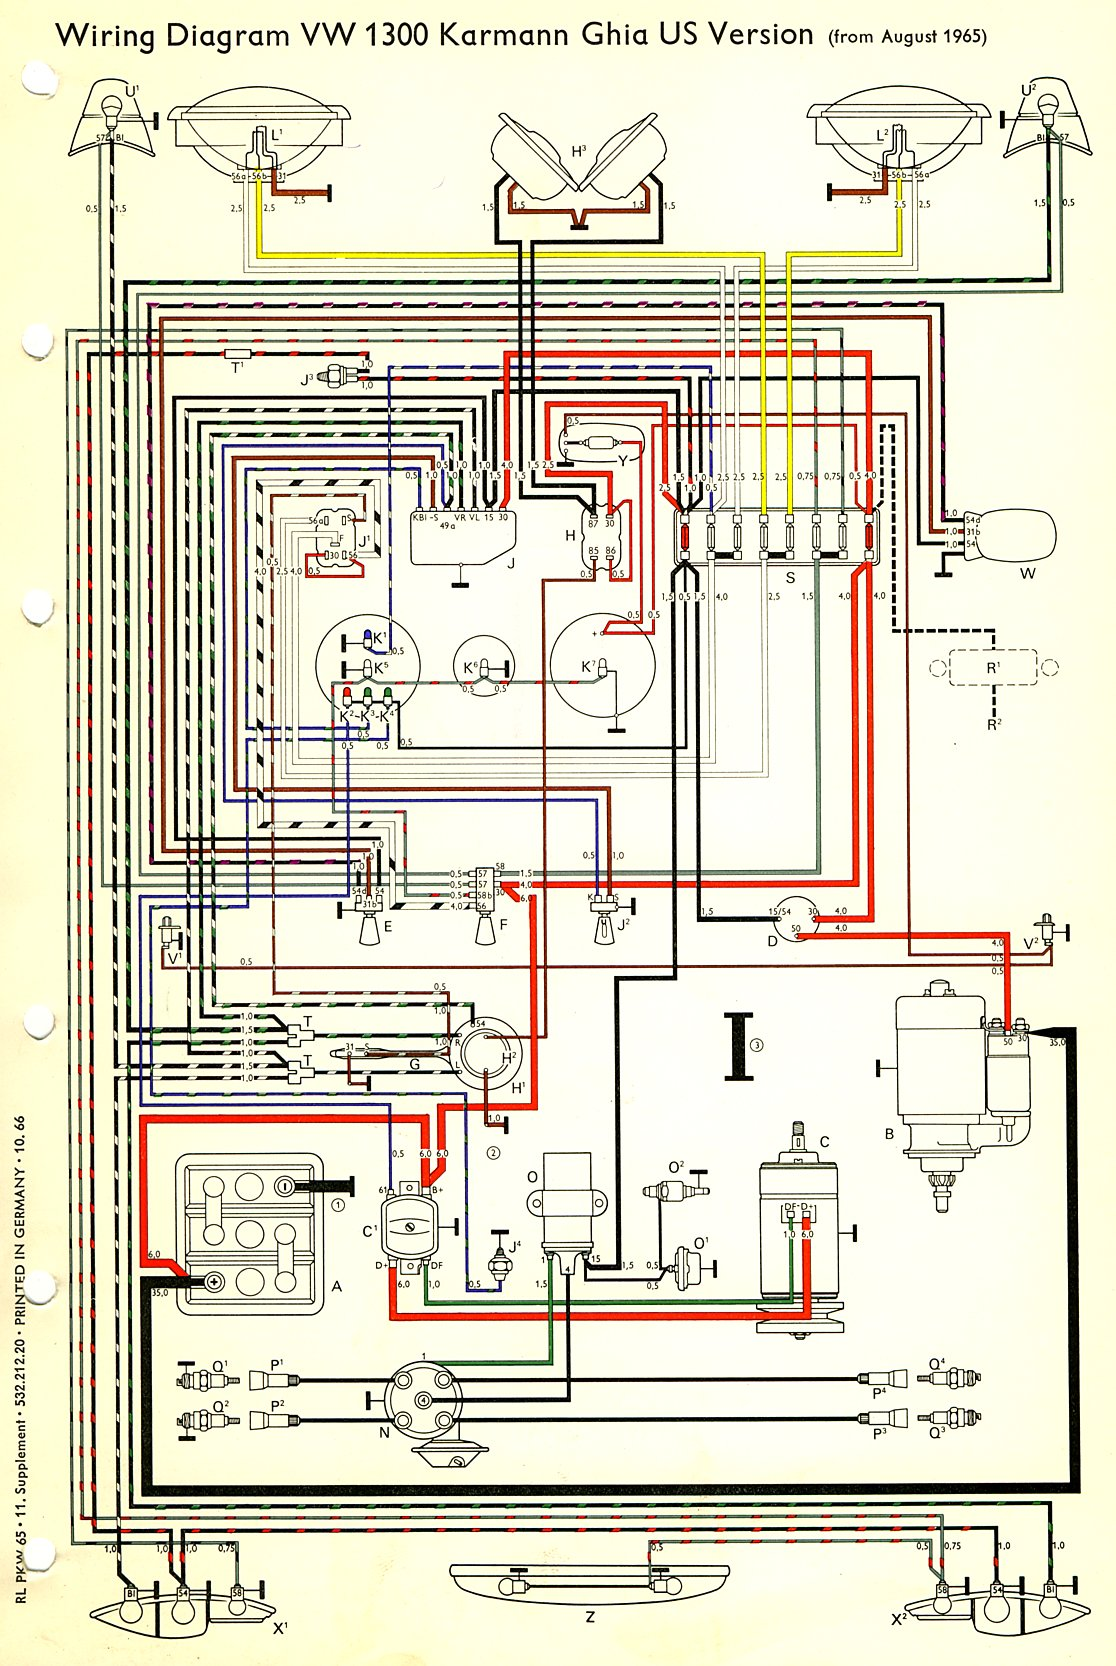 Free Electrical Wiring Diagram 1971 Mustang Not Lossing Ford On 1970 Solenoid Thesamba Com Karmann Ghia Diagrams Rh